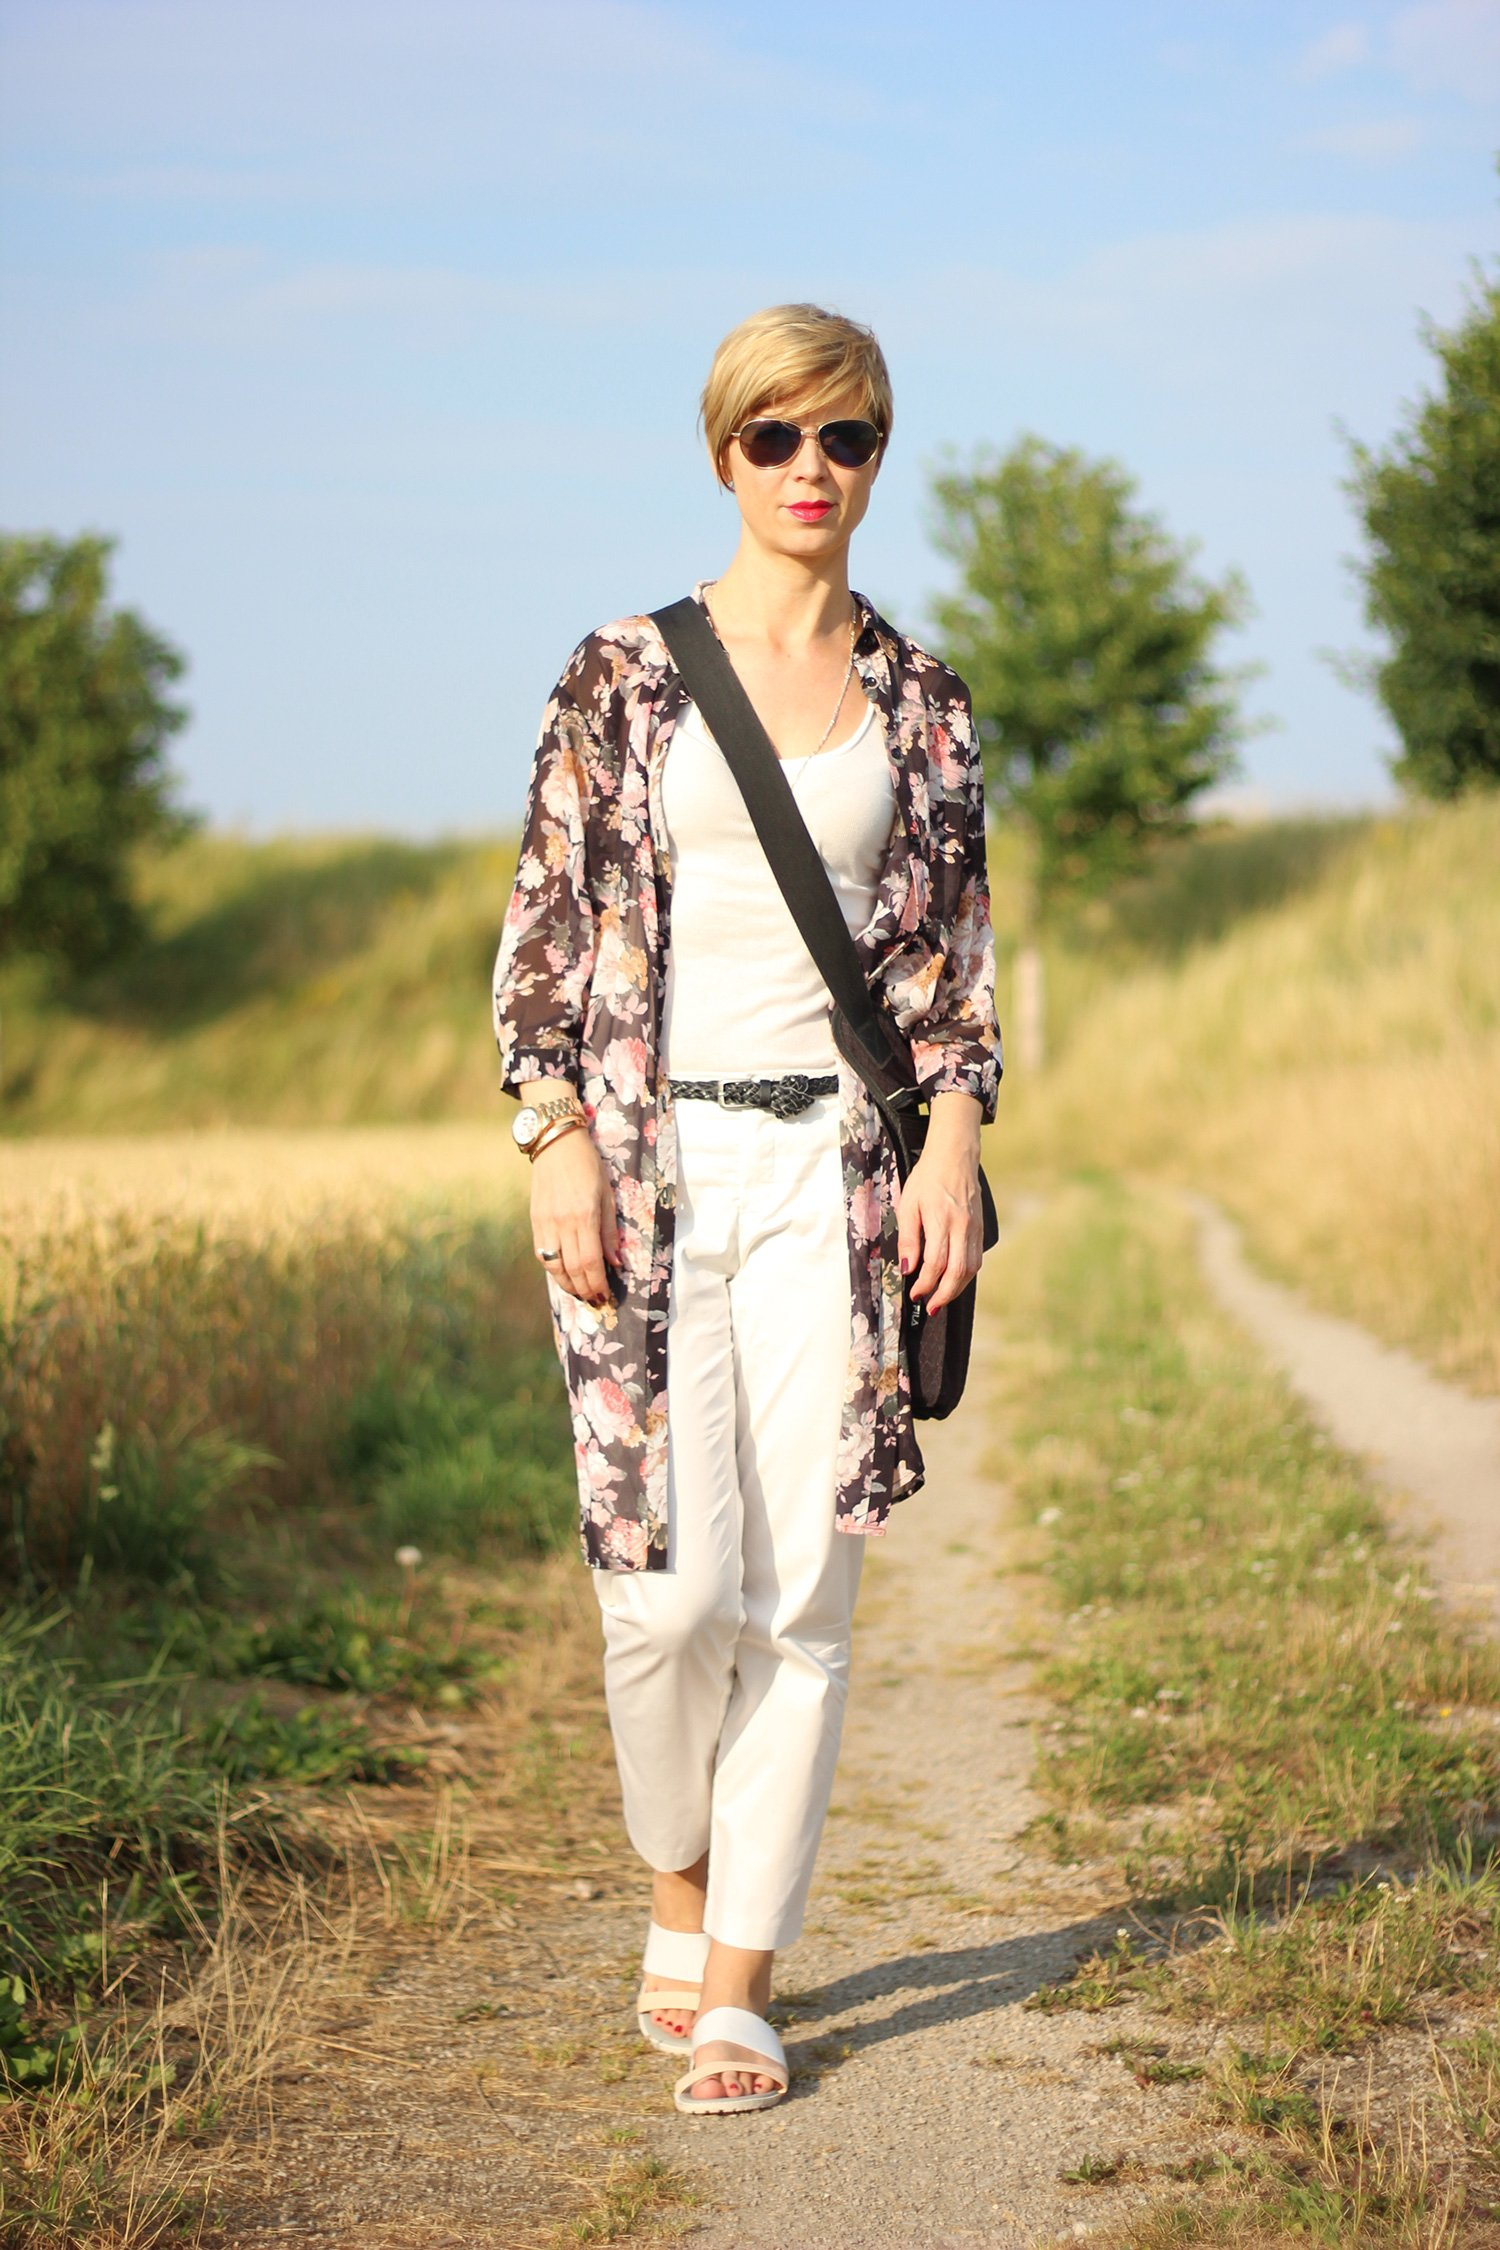 IMG_7962aLongbluse_Blumen_flowers_weisseHose_whitepants_oui_top_summer_fashion_aheamdundahos_conny_crossbodybag